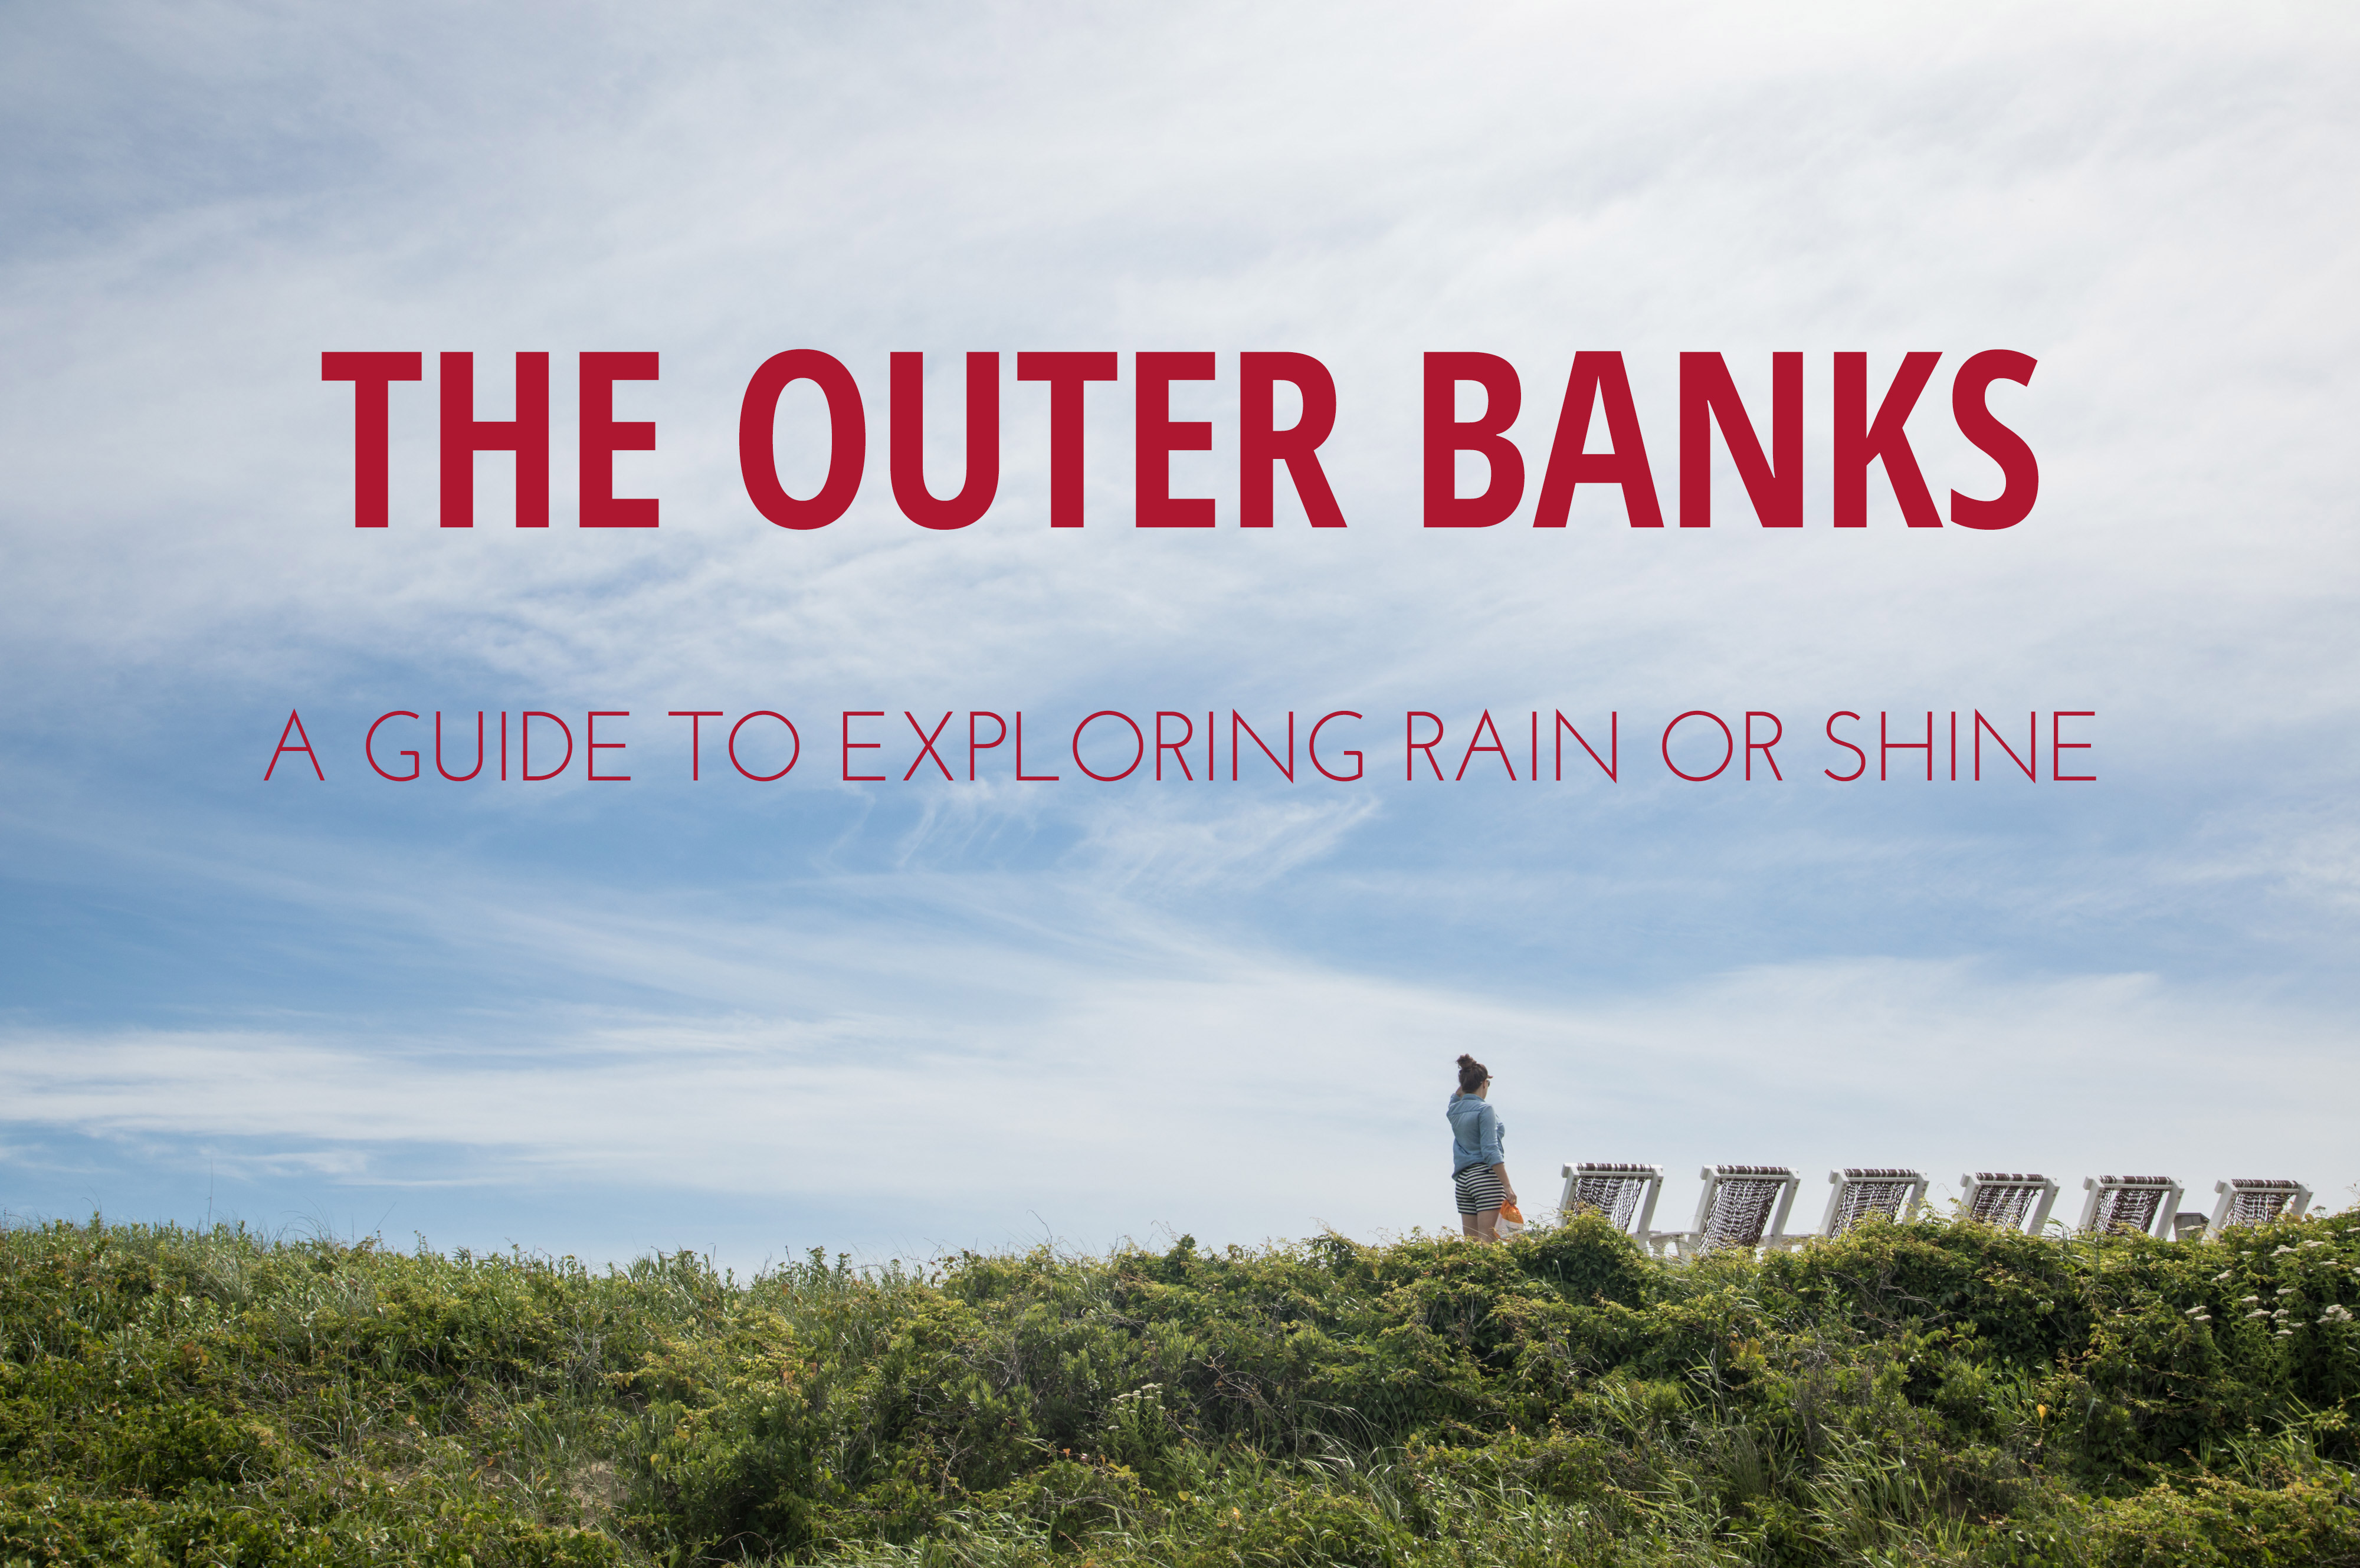 Outer Banks Travel Guide, OBX travel Guide